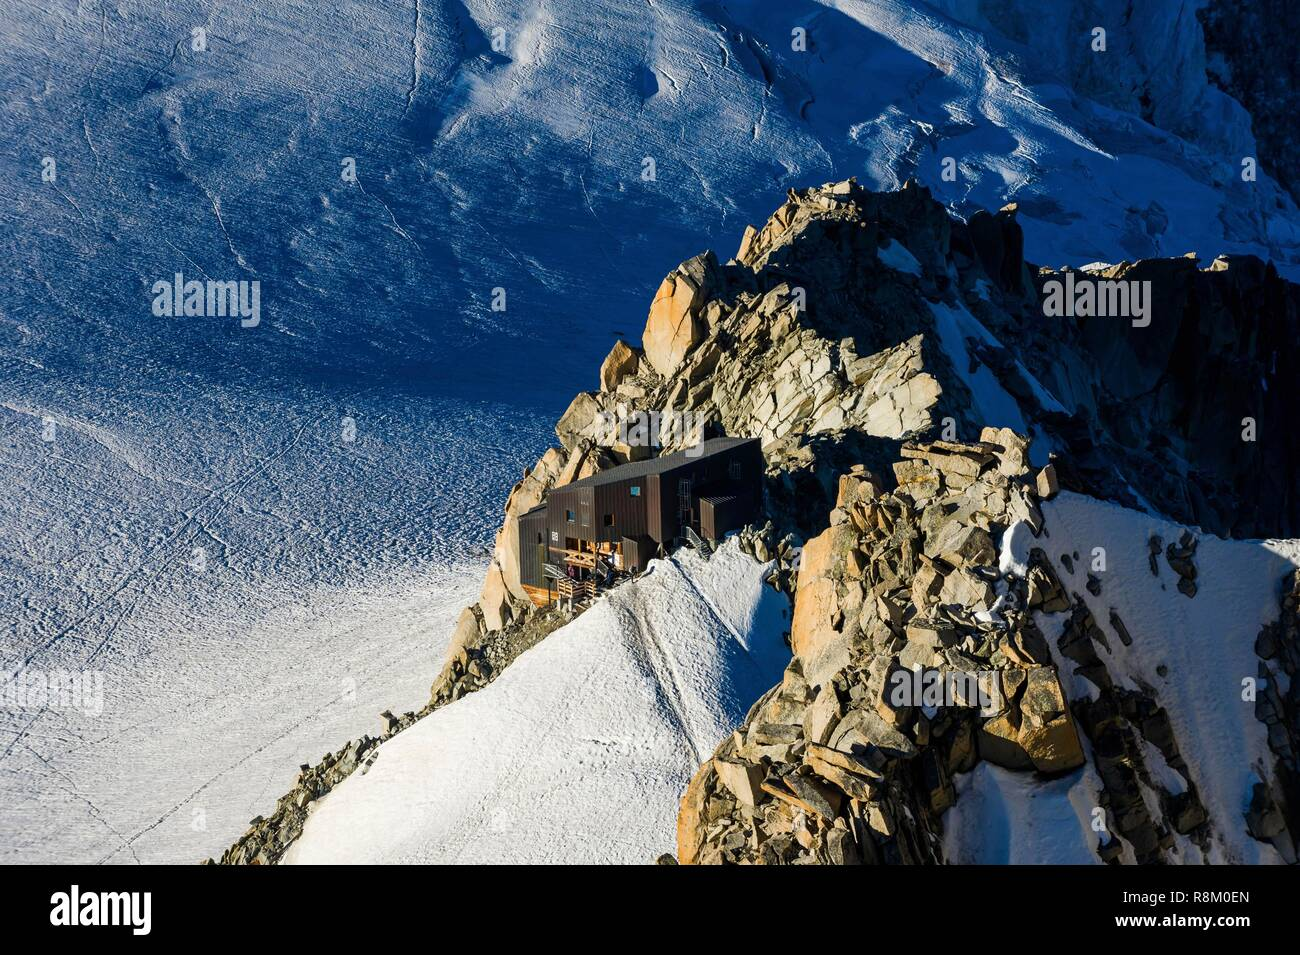 France, Haute-Savoie, Chamonix-Mont-Blanc, refuge du Requin from summit station of the Aiguille du Midi cable car - Stock Image